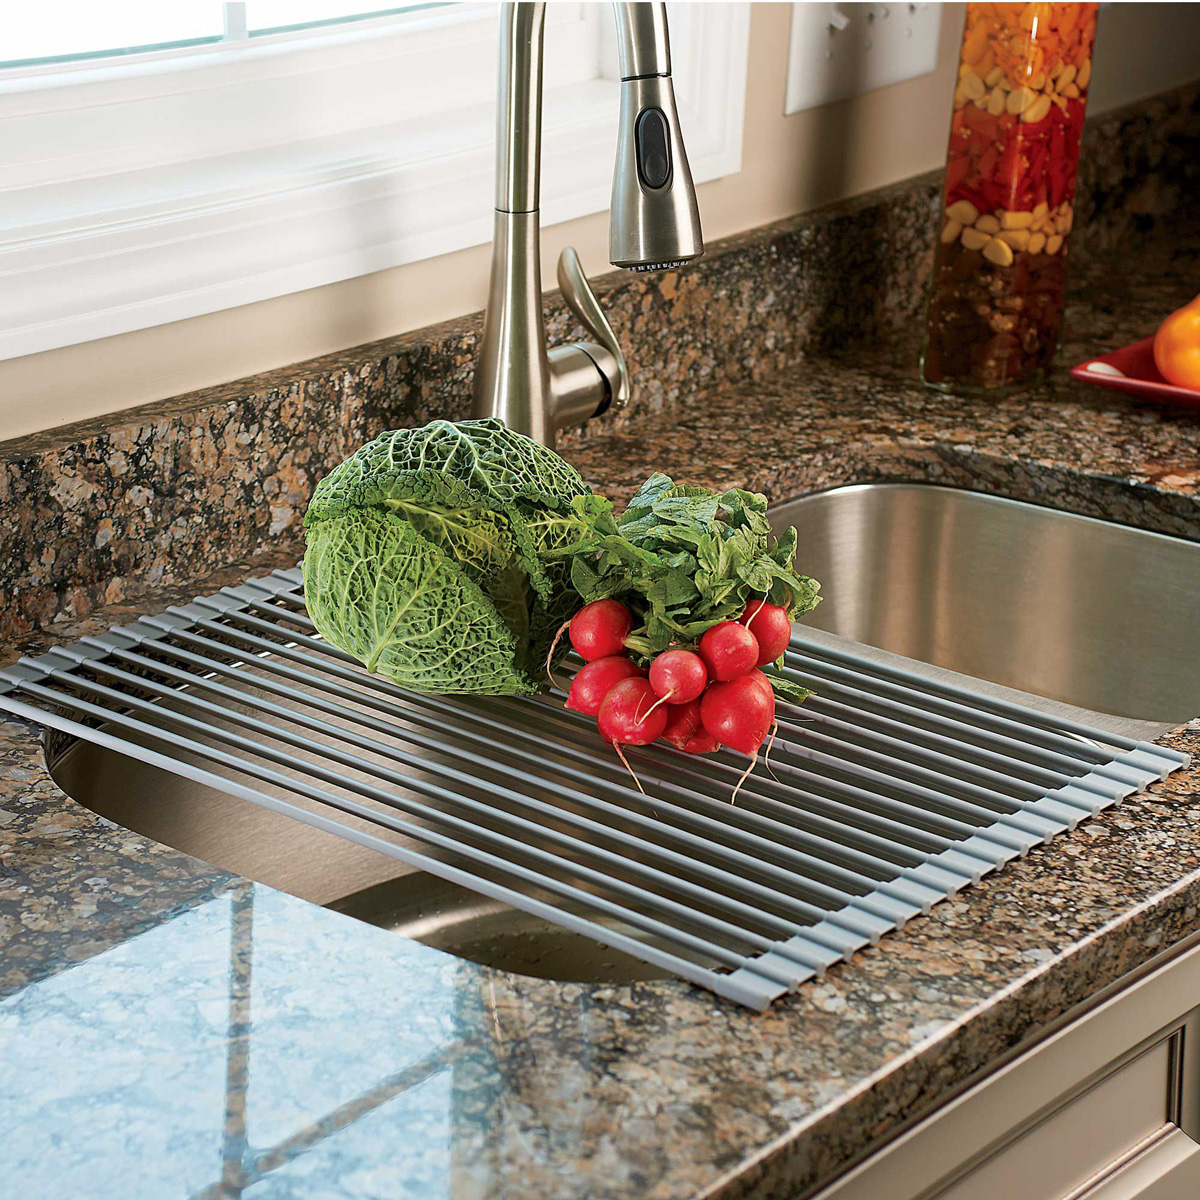 Kitchen Drying Rack For Sink Over The Sink Roll Up Drying Rack Colander The Green Head